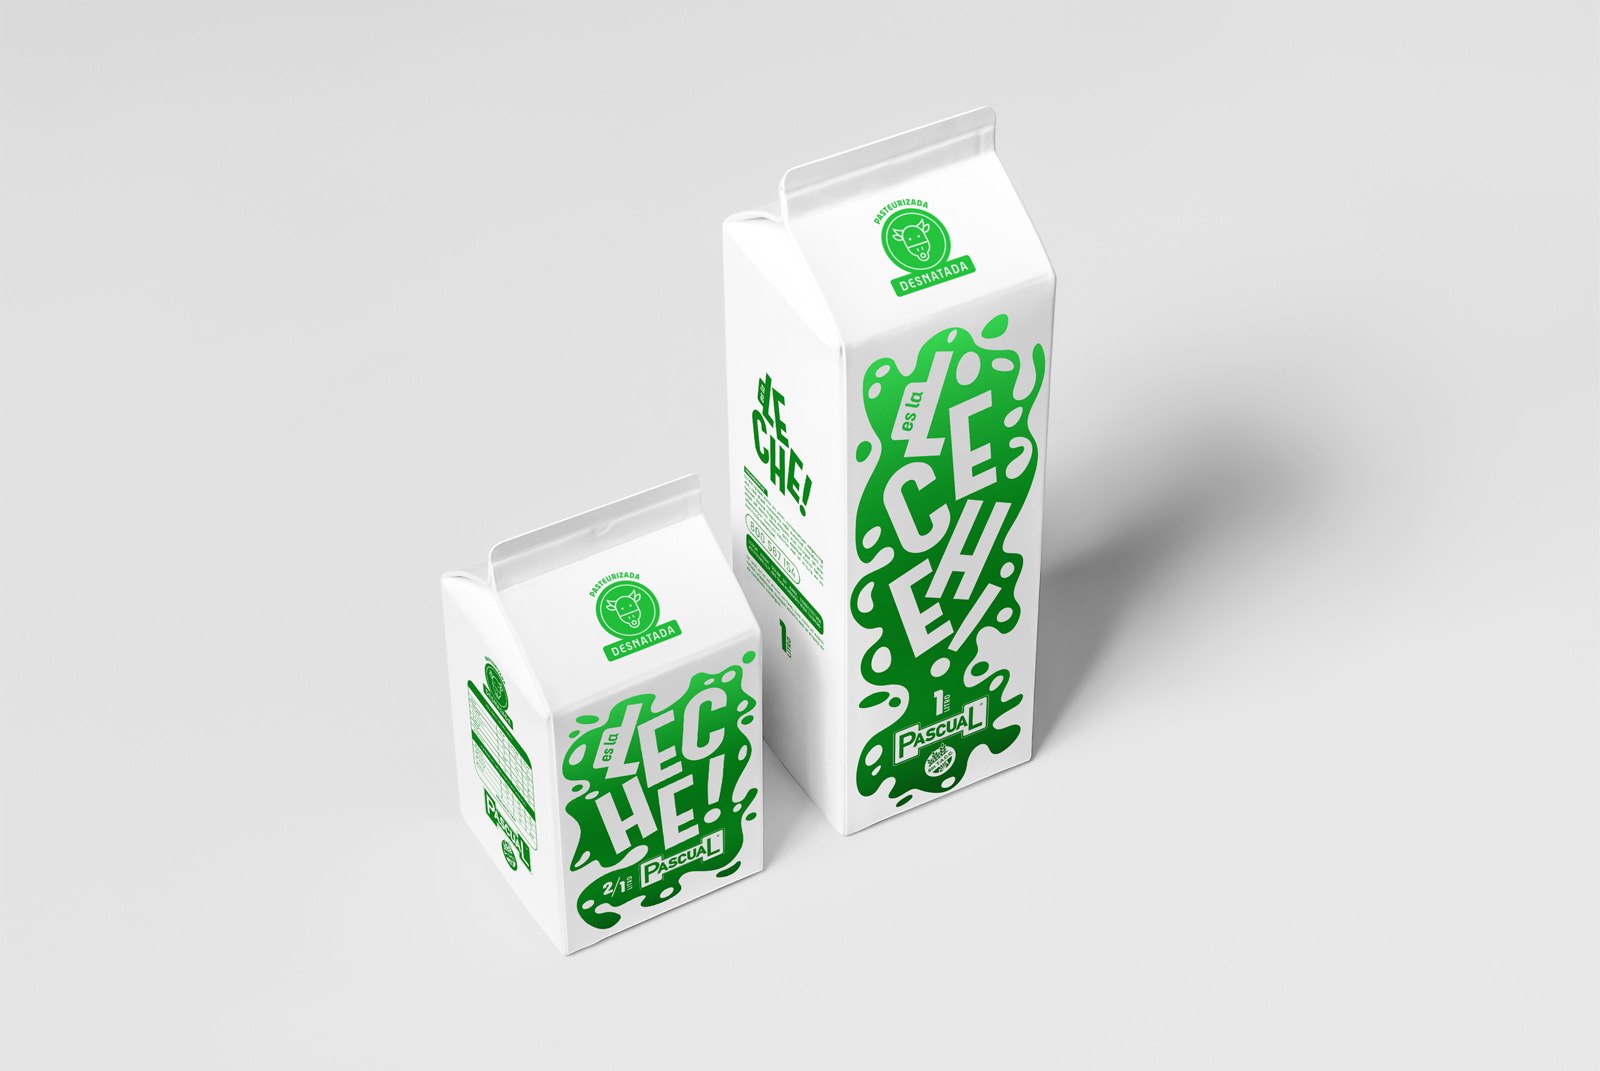 Leche-Pascual-Packaging-01